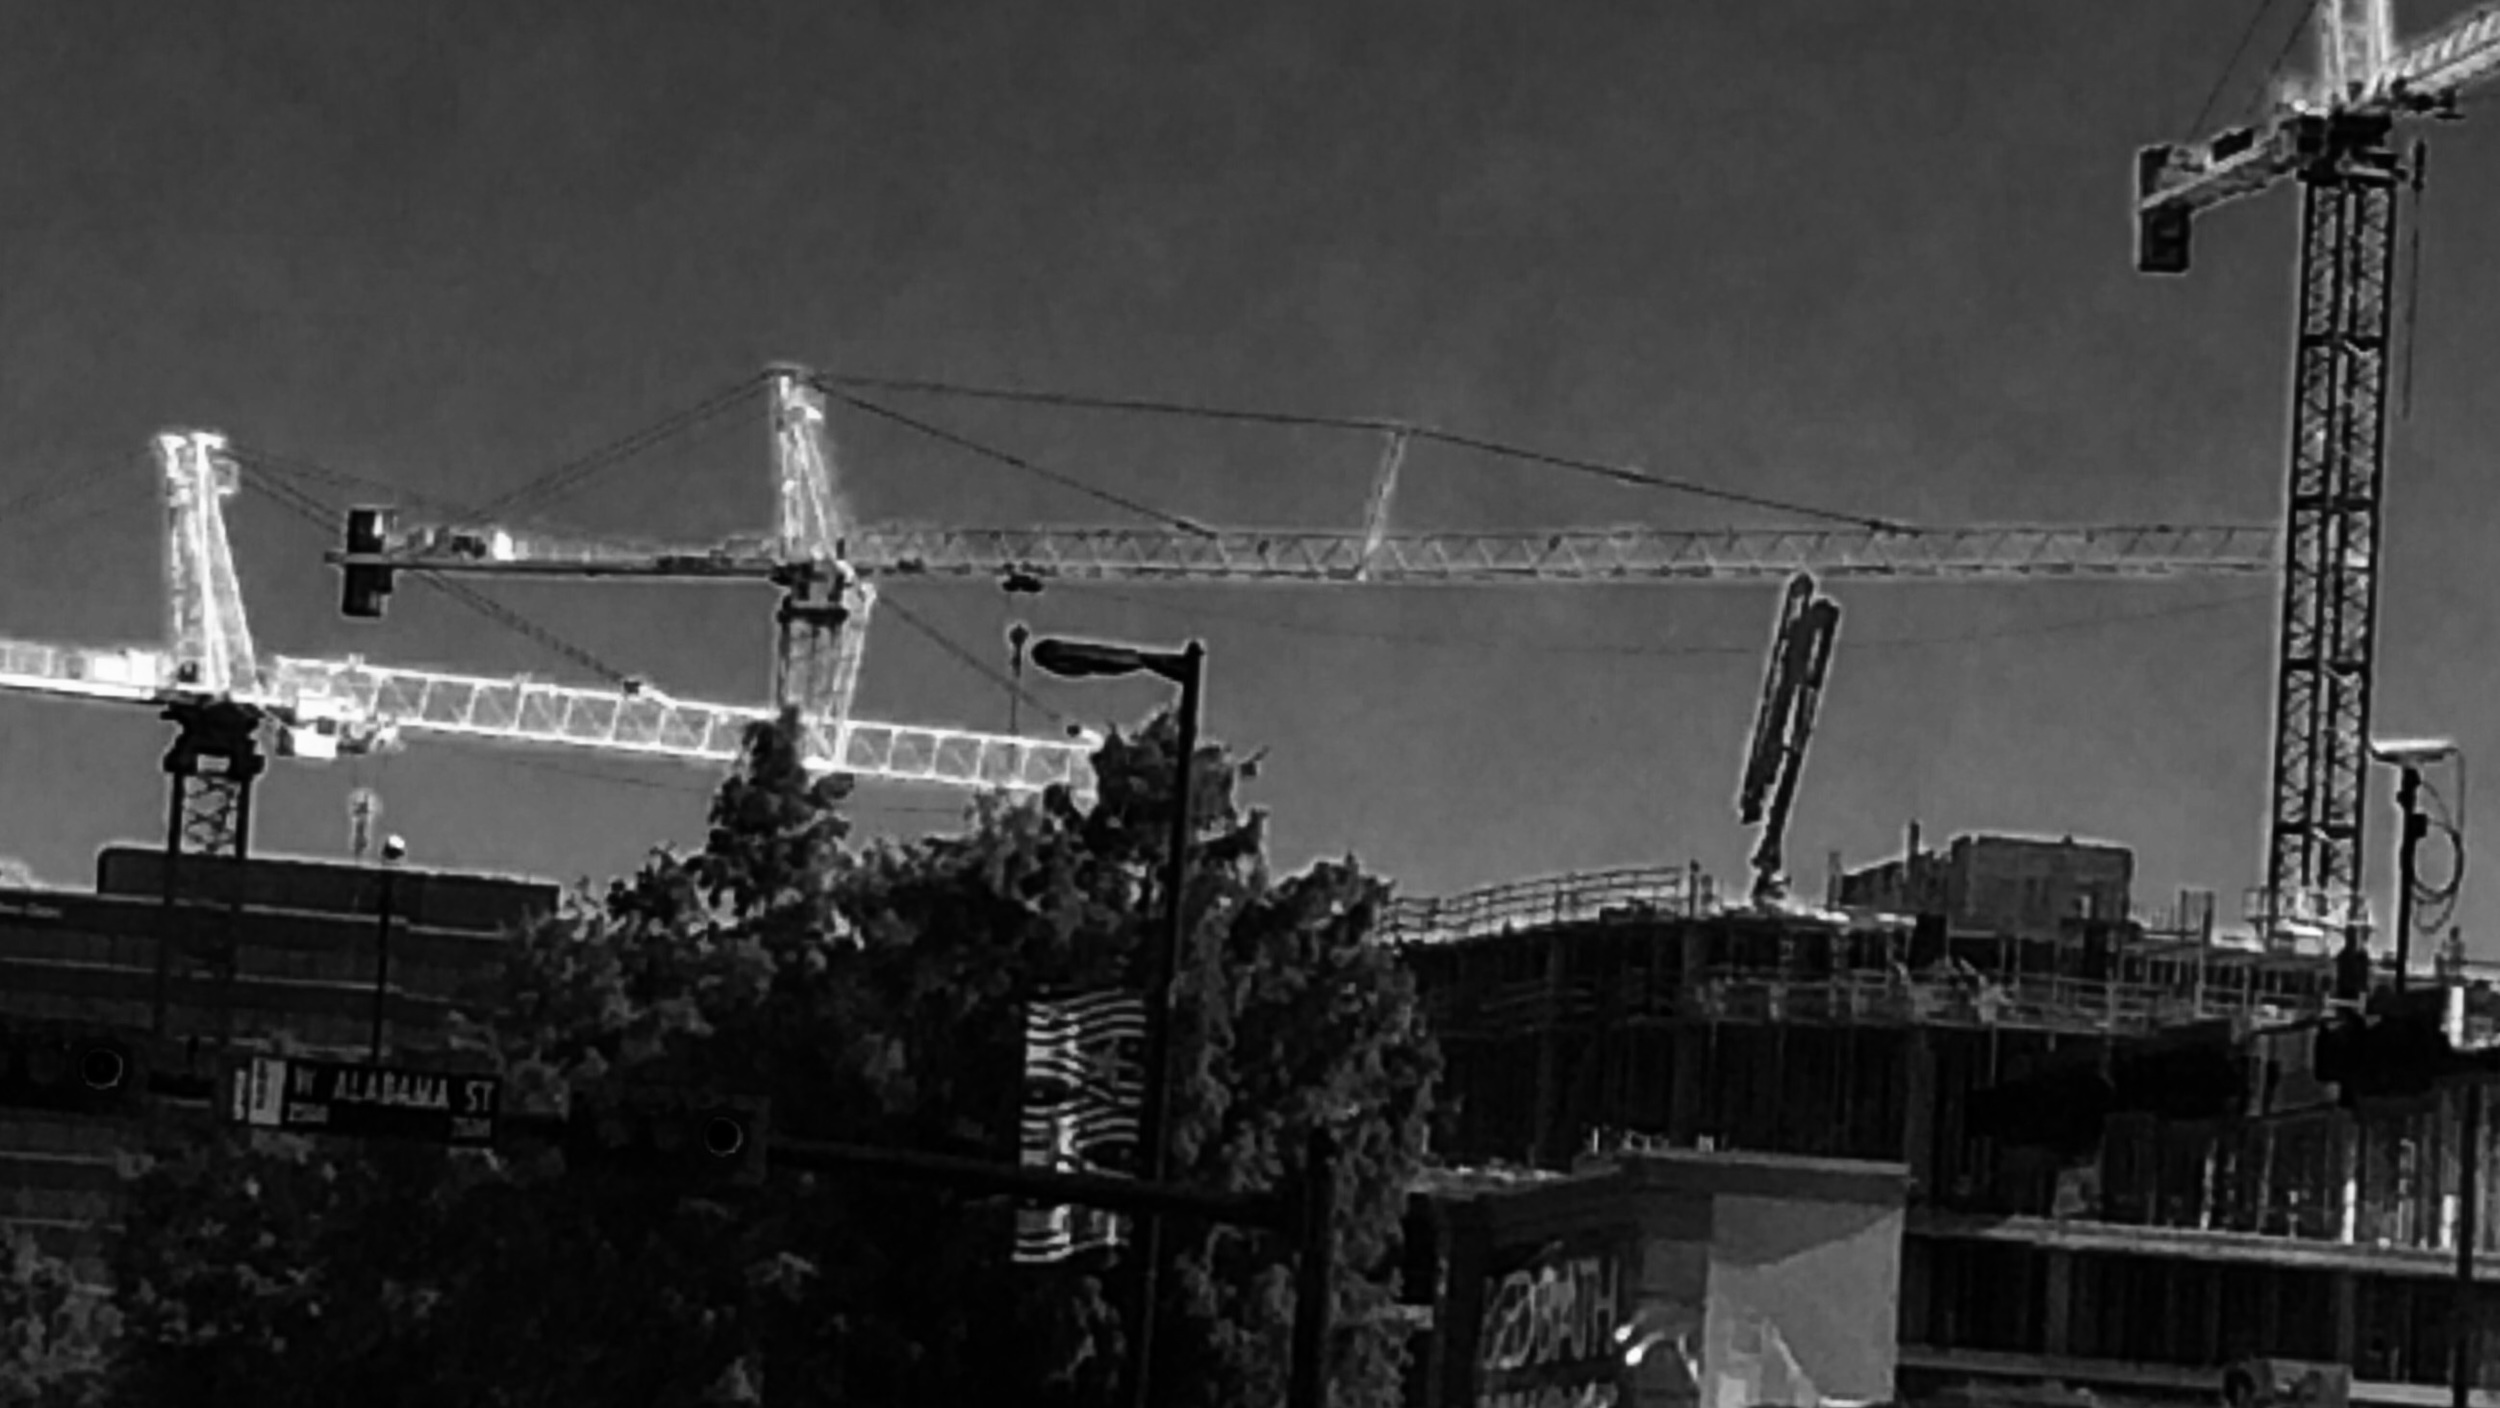 White construction cranes on Kirby drive.